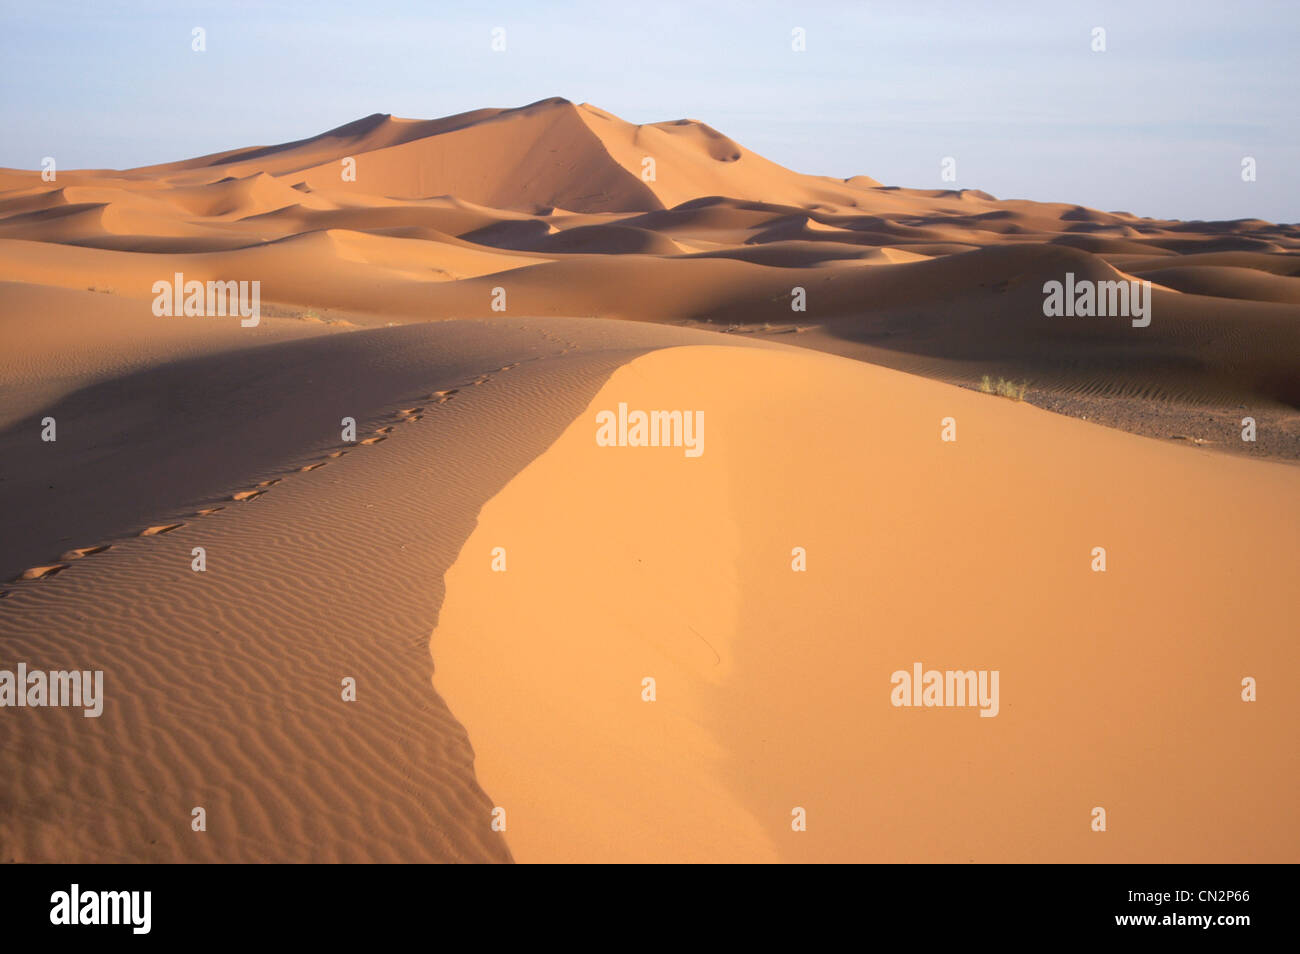 Footprints in the desert, Morocco, North Africa - Stock Image